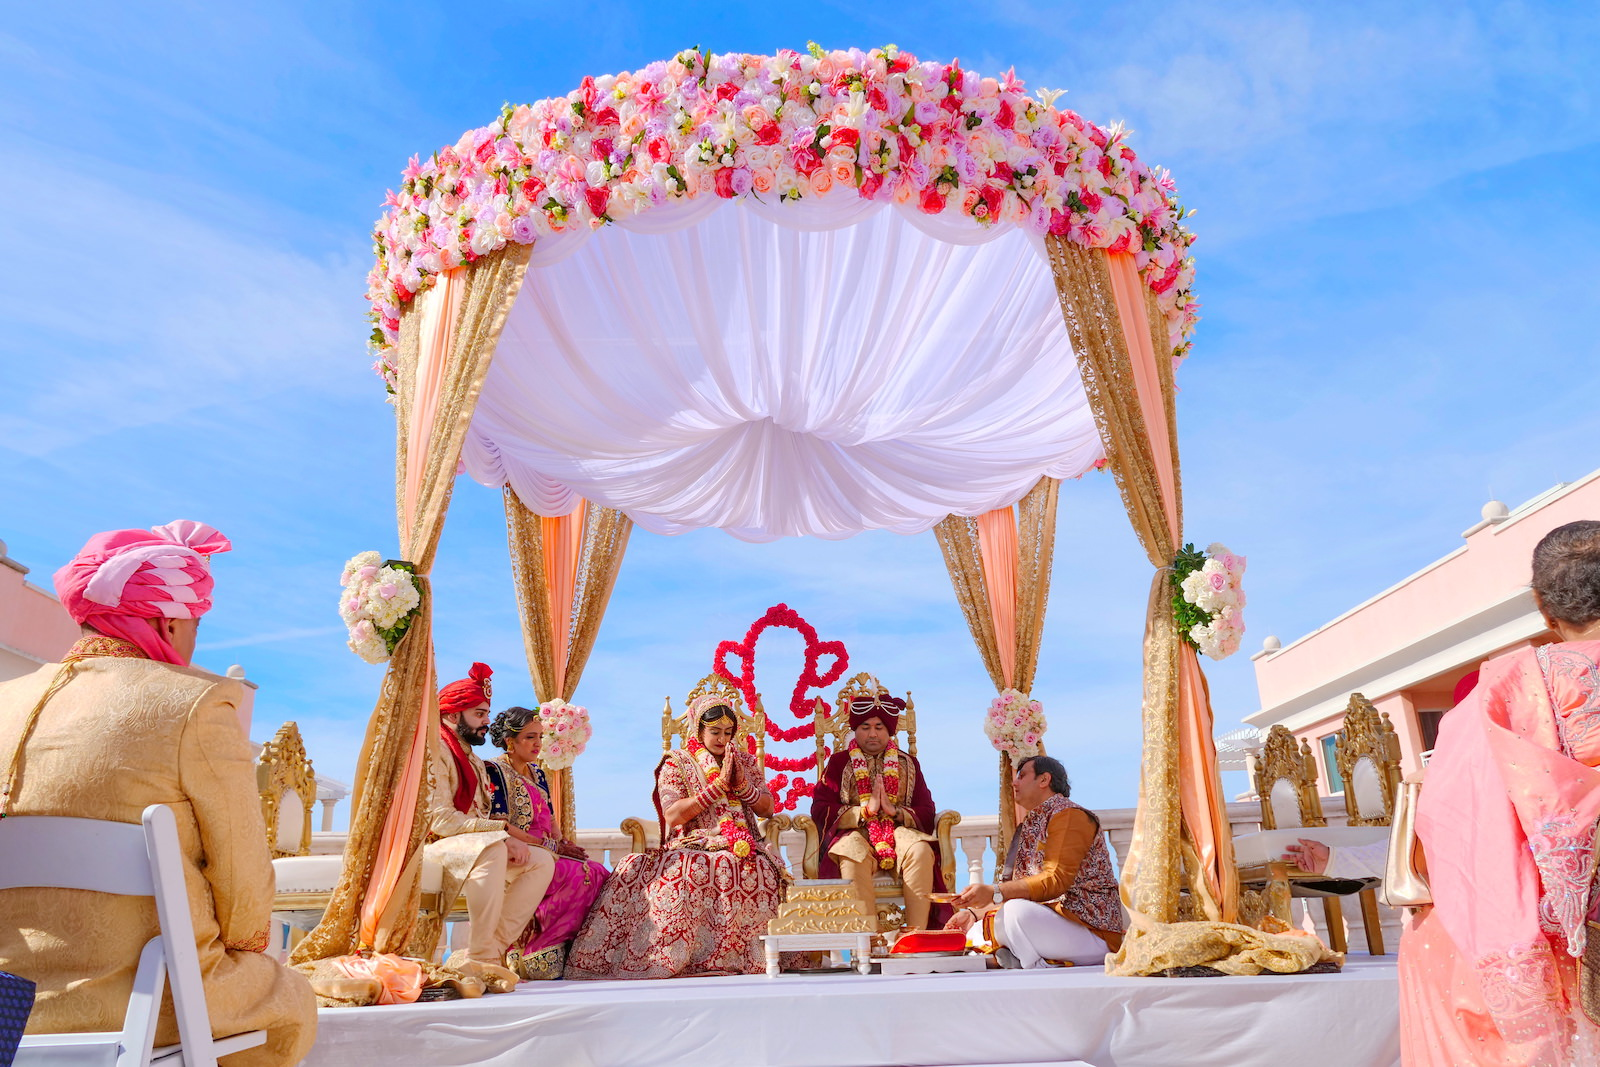 Rooftop Indian Wedding Ceremony at Clearwater Wedding Venue Hyatt Regency Clearwater Beach | Pink and Gold Mandap with Draping and Roses and Floral Elephant